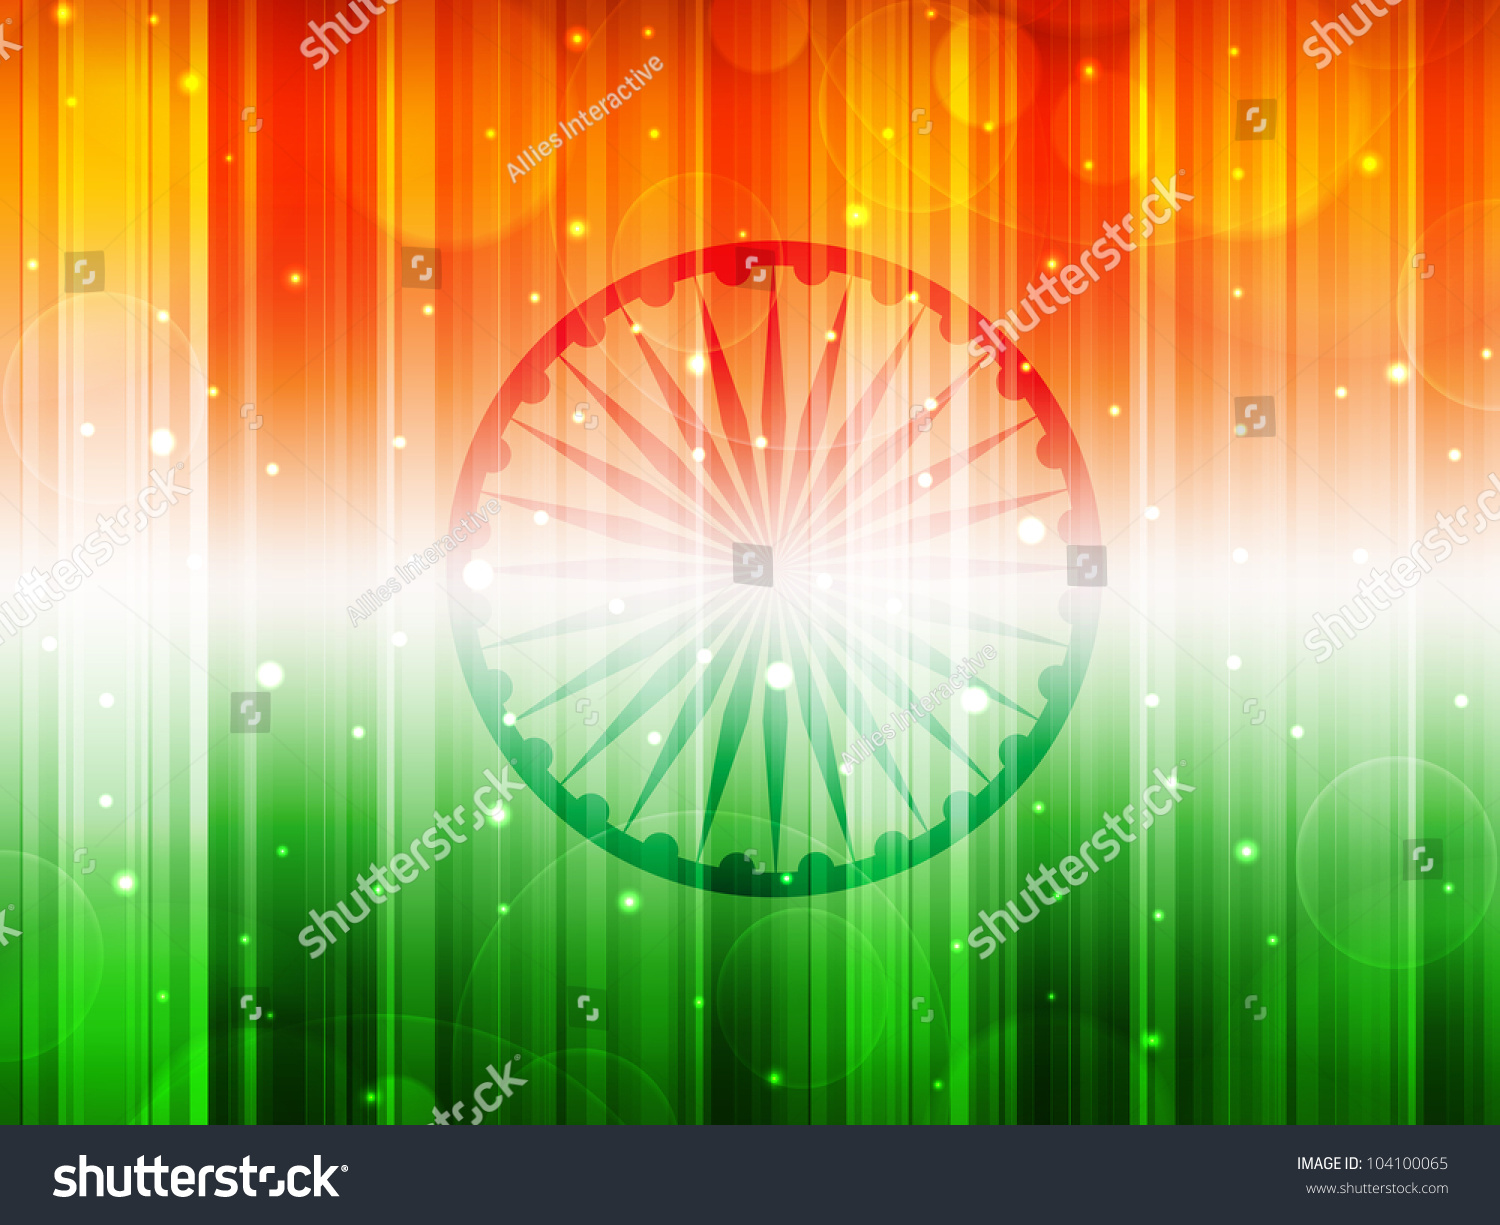 Indian Flag Theme: Indian Flag Theme Background With Shiny Effect For